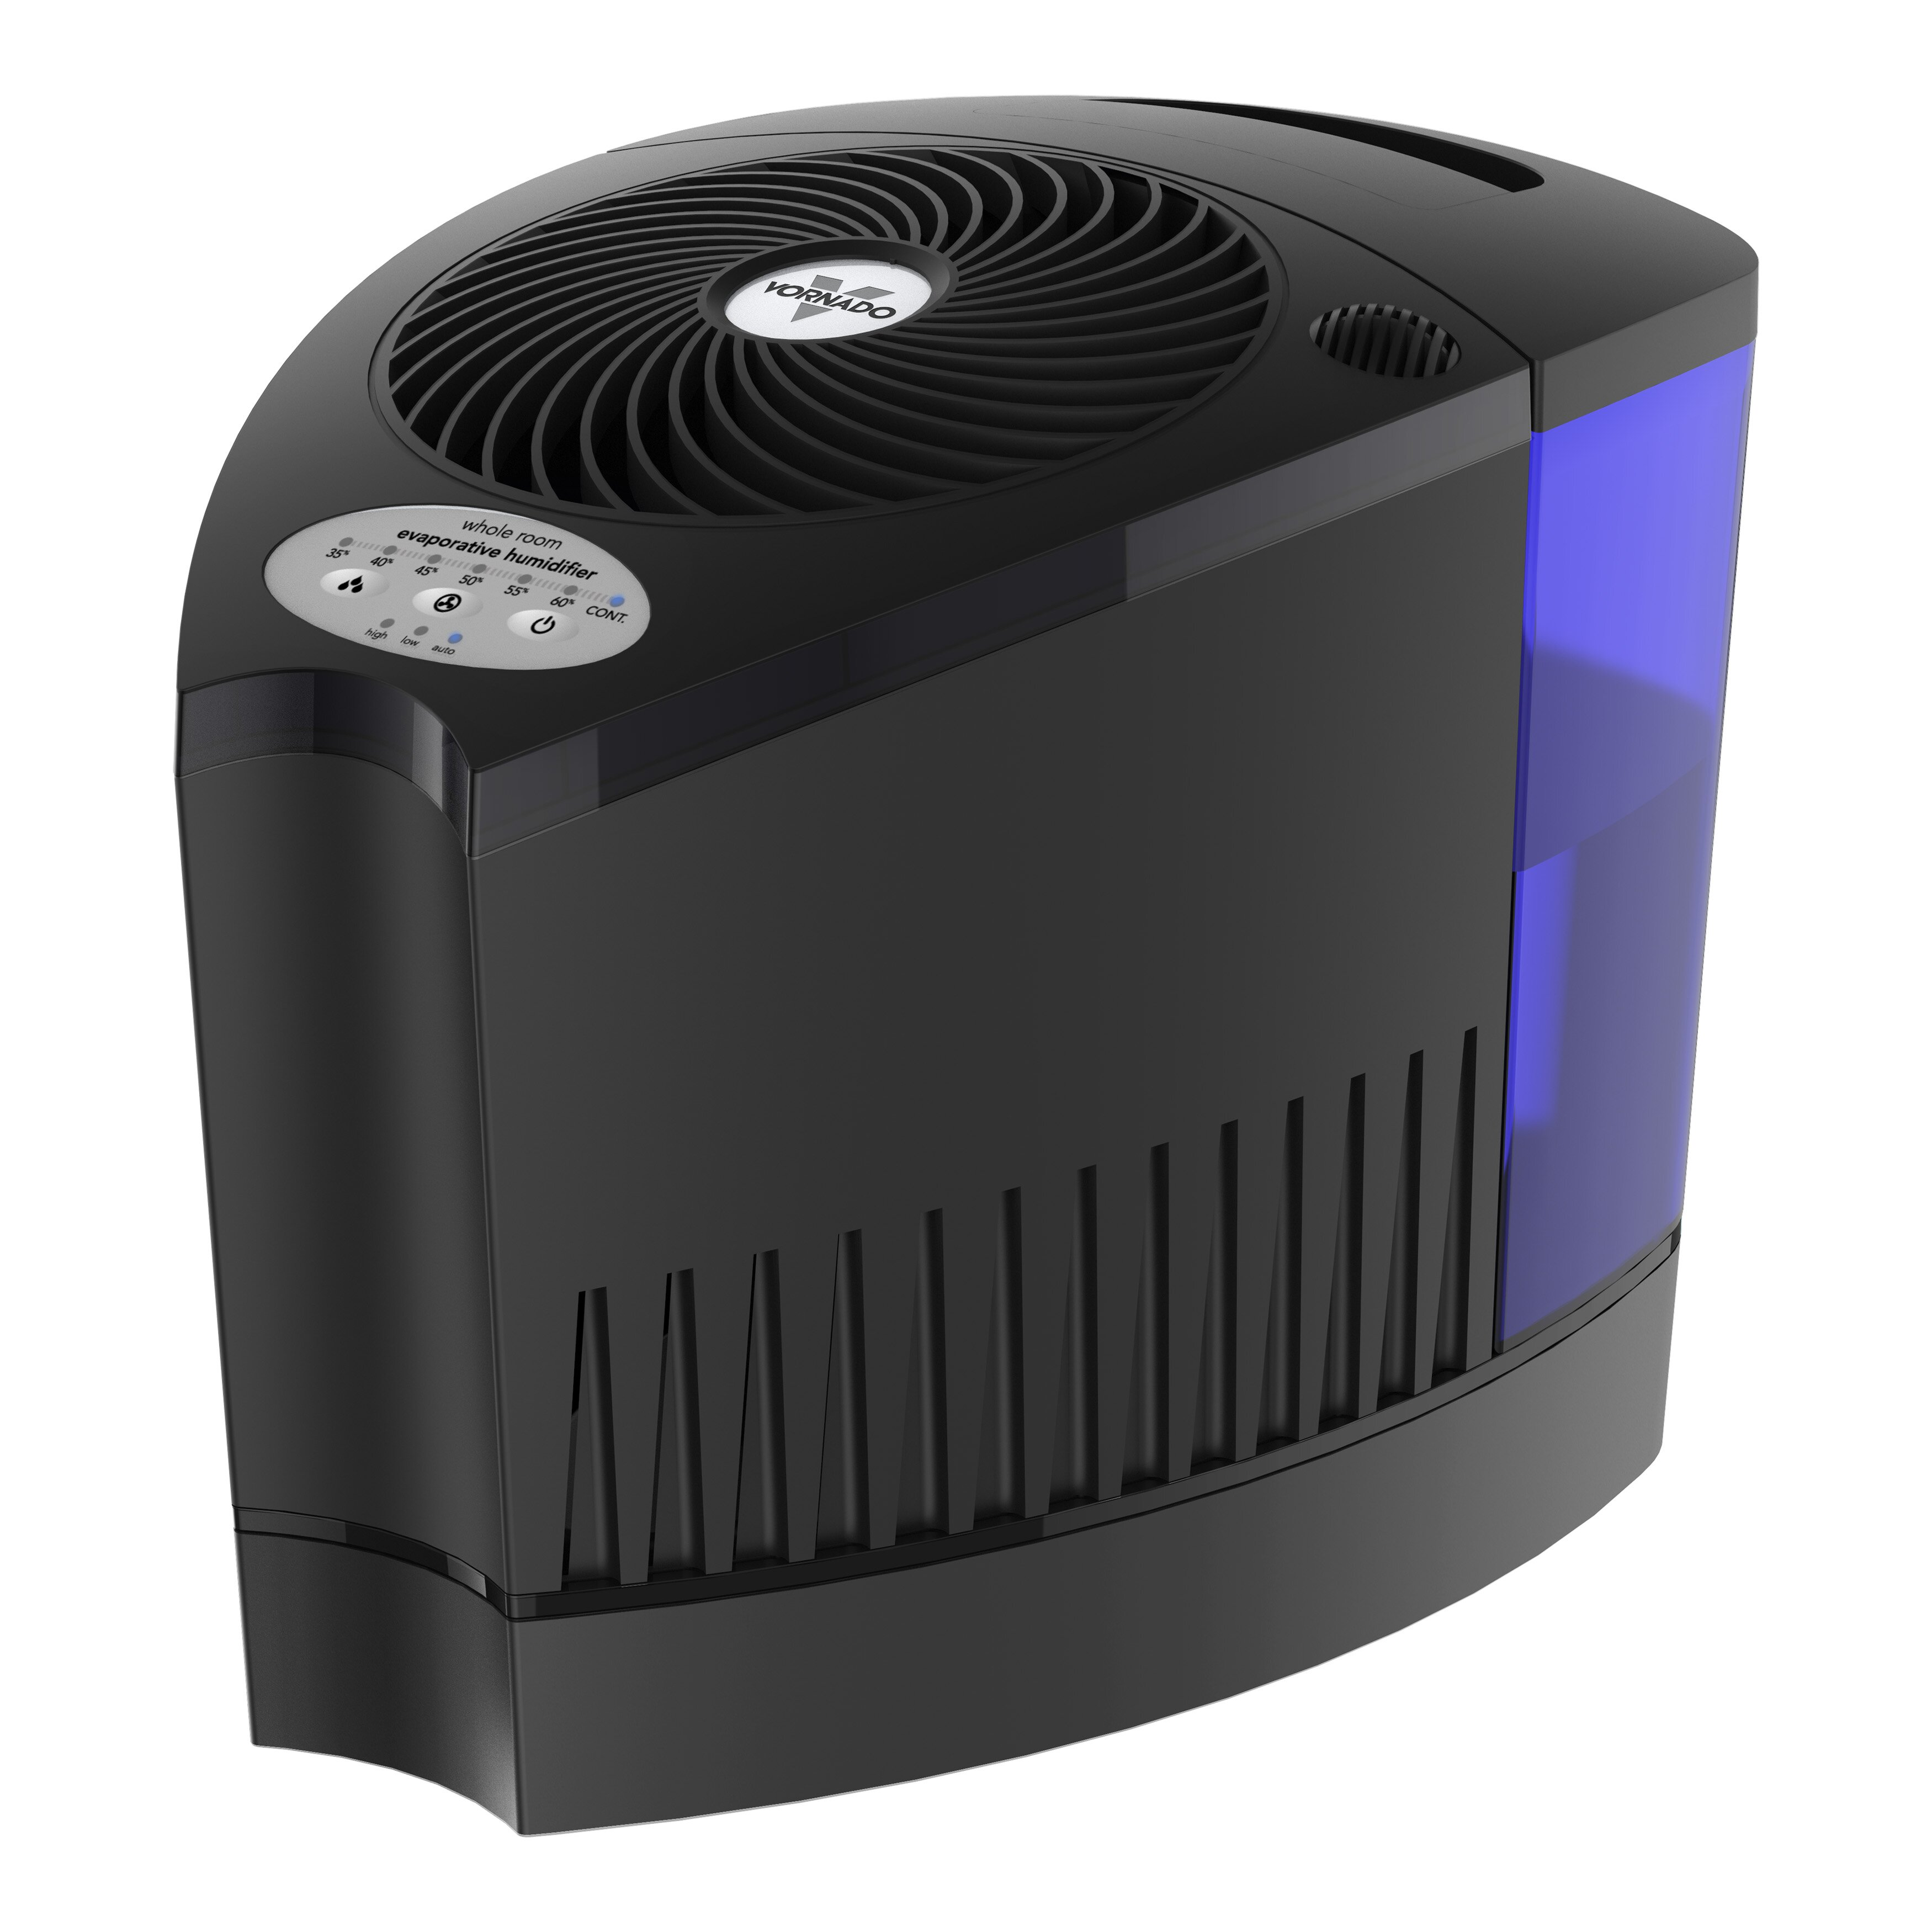 Vornado evap3 1 8 gal cool mist evaporative humidifier for Living room humidifier